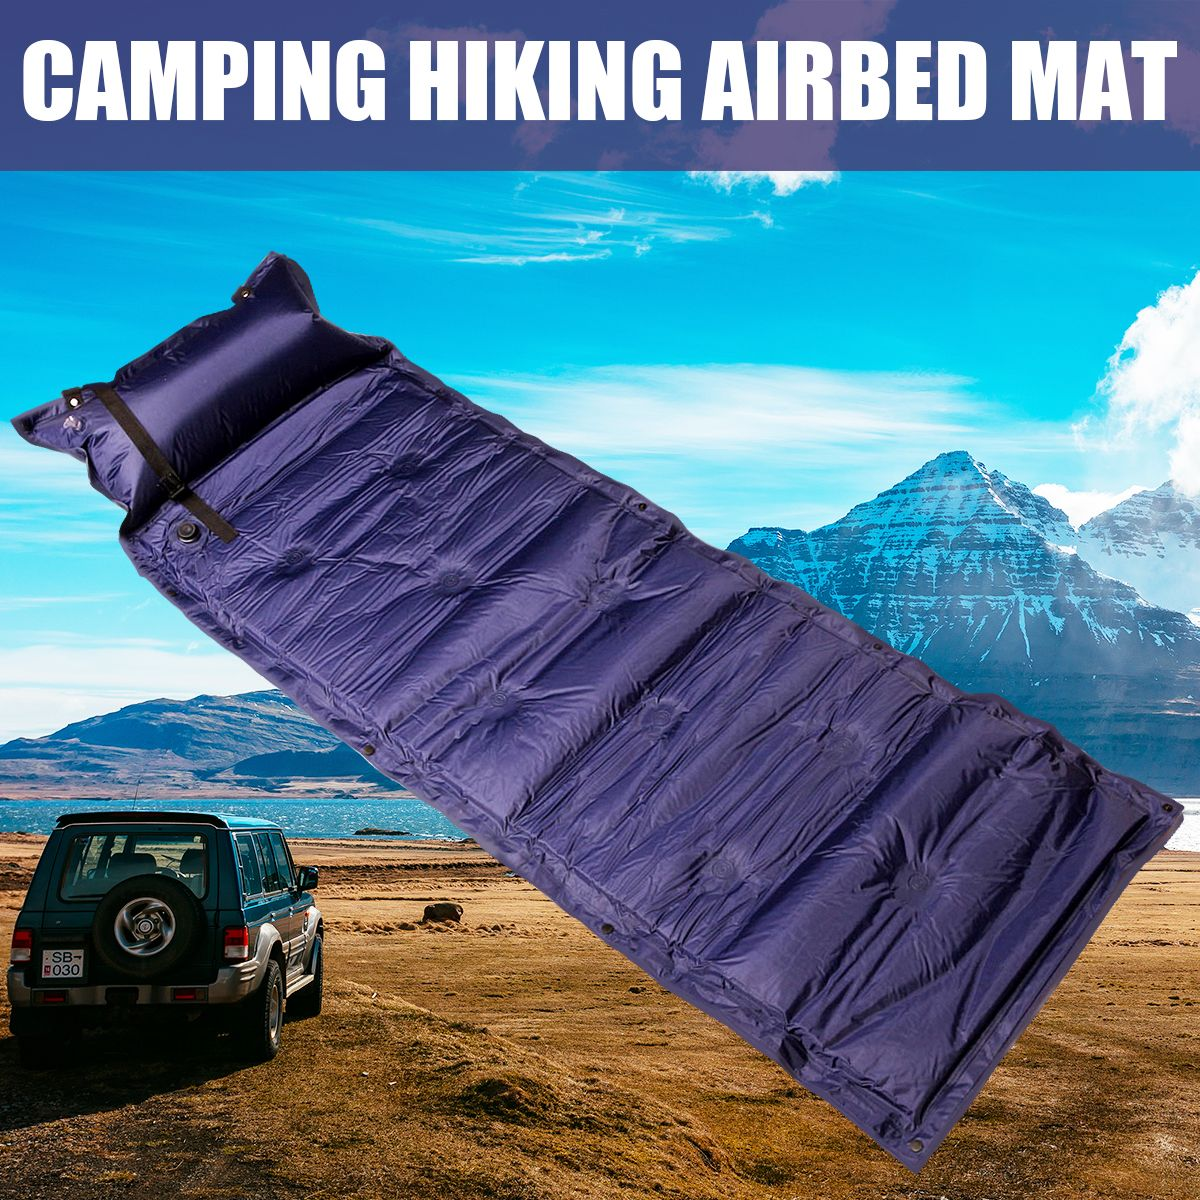 Outdoor Polyester Camping Self Inflating Air Mat Mattress Pad Pillow Waterproof Hiking Sleeping Bed 4 Colors Air Mat Air Mattress Camping Tent Tent Camping